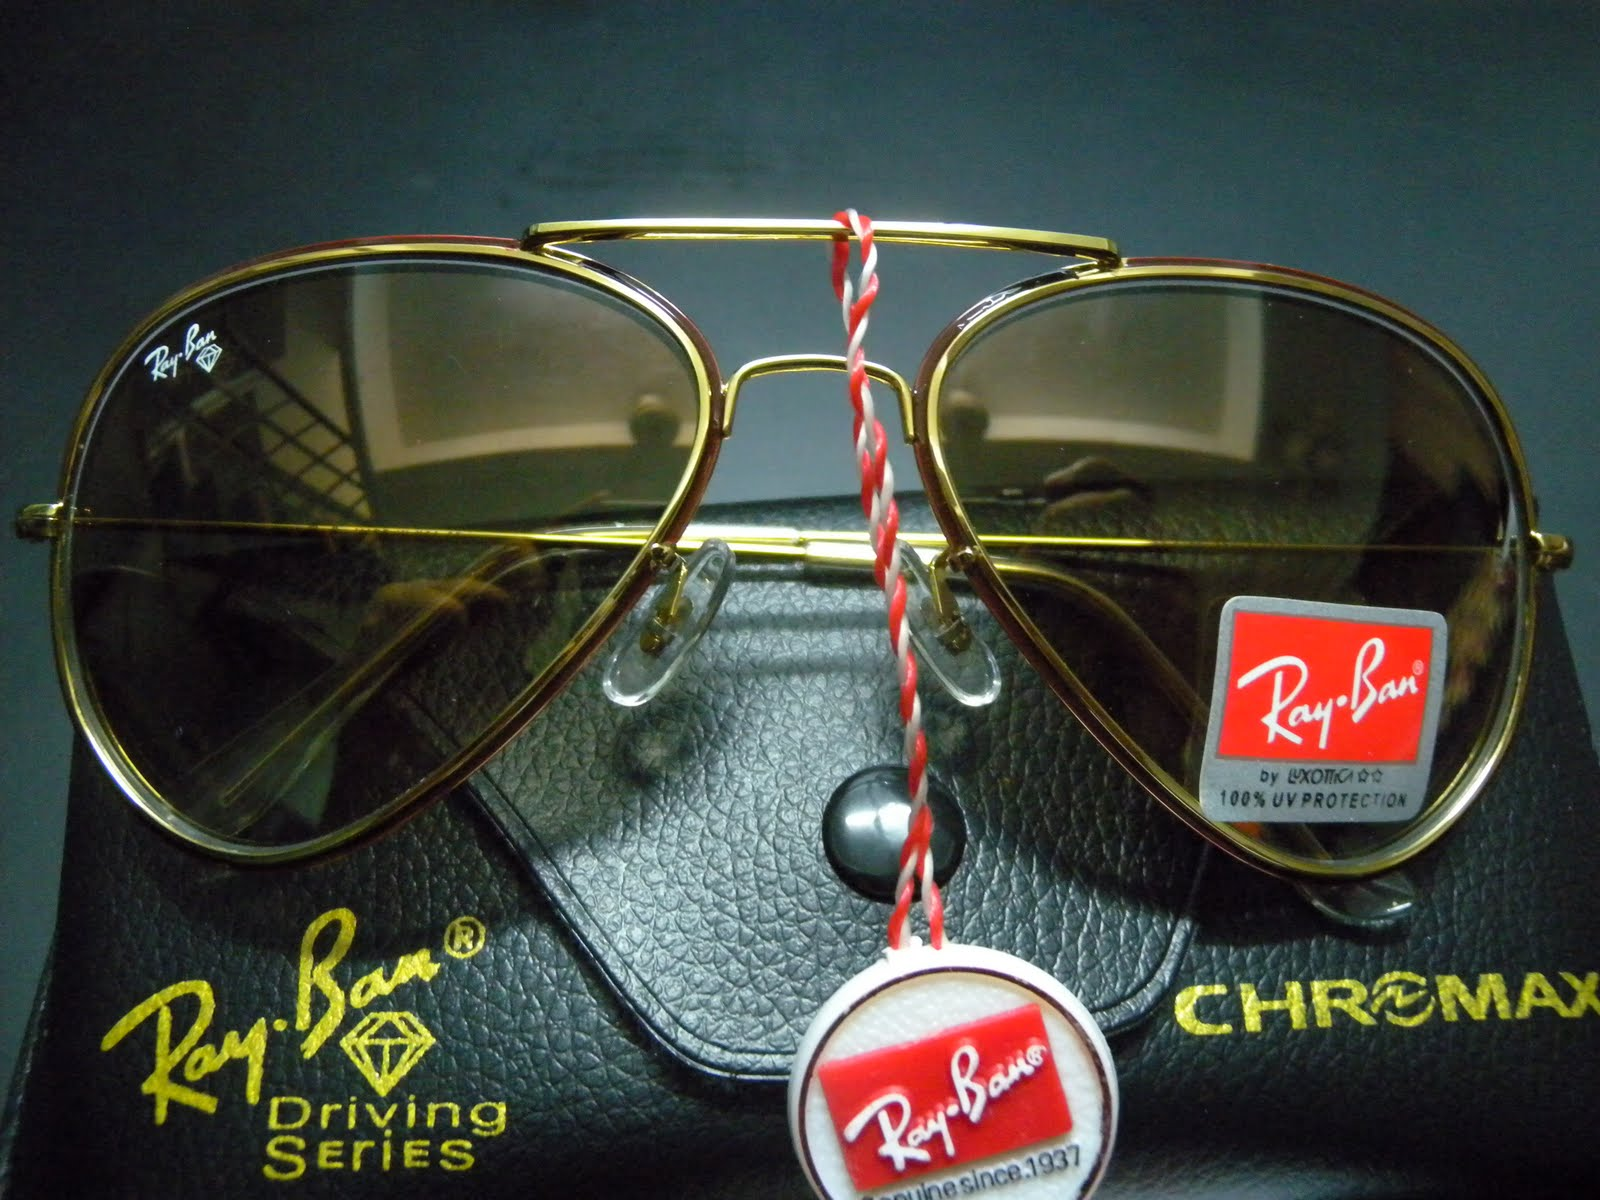 a38d9c0f29 Ray Ban Rb3026 62o14 138 Price In India. Ray Ban Aviator Diamond « Heritage  Malta